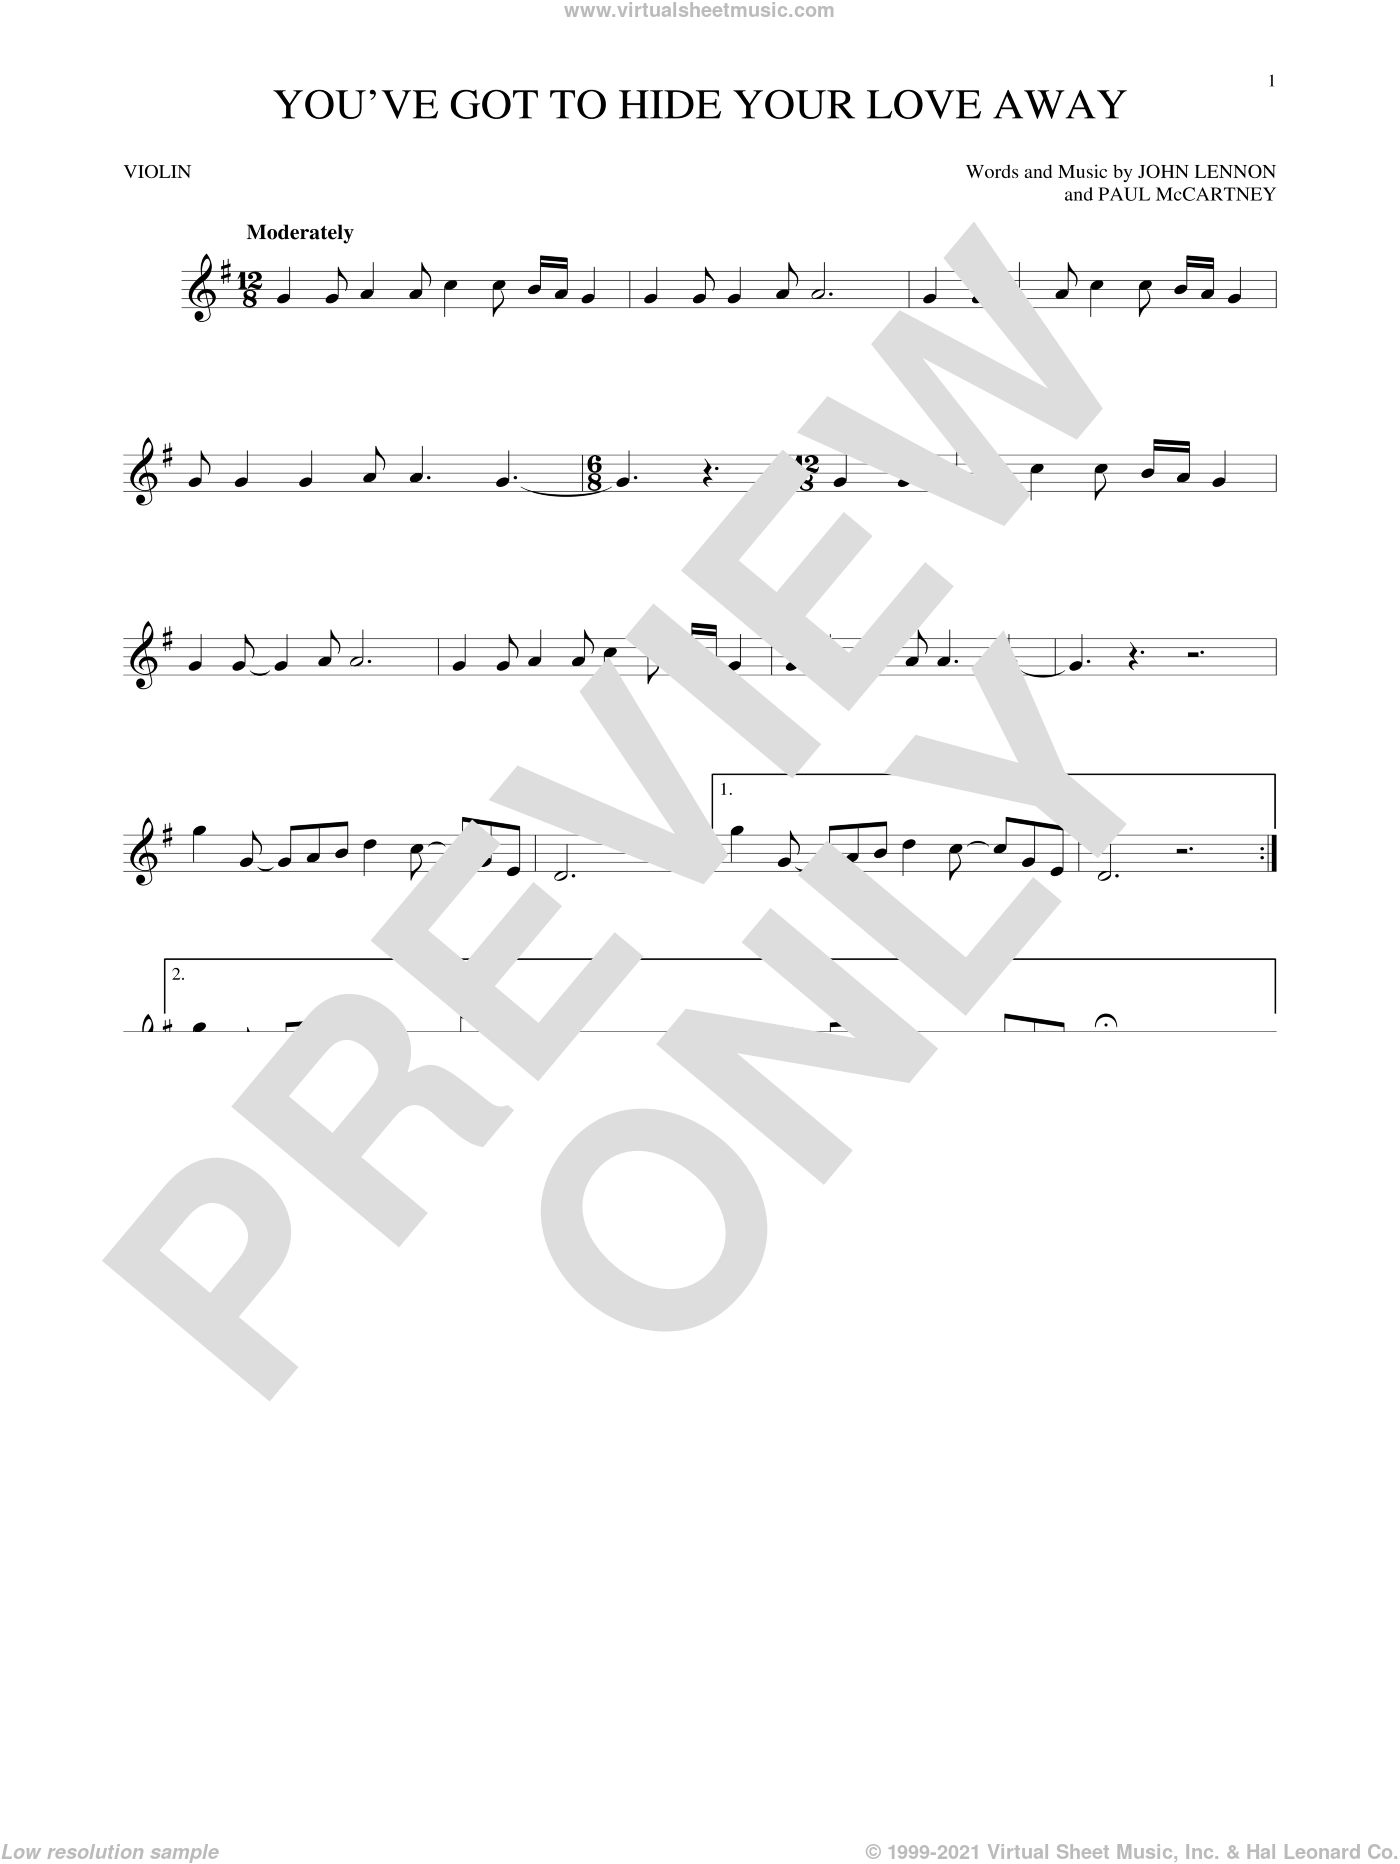 You've Got To Hide Your Love Away sheet music for violin solo by Paul McCartney, The Beatles and John Lennon. Score Image Preview.